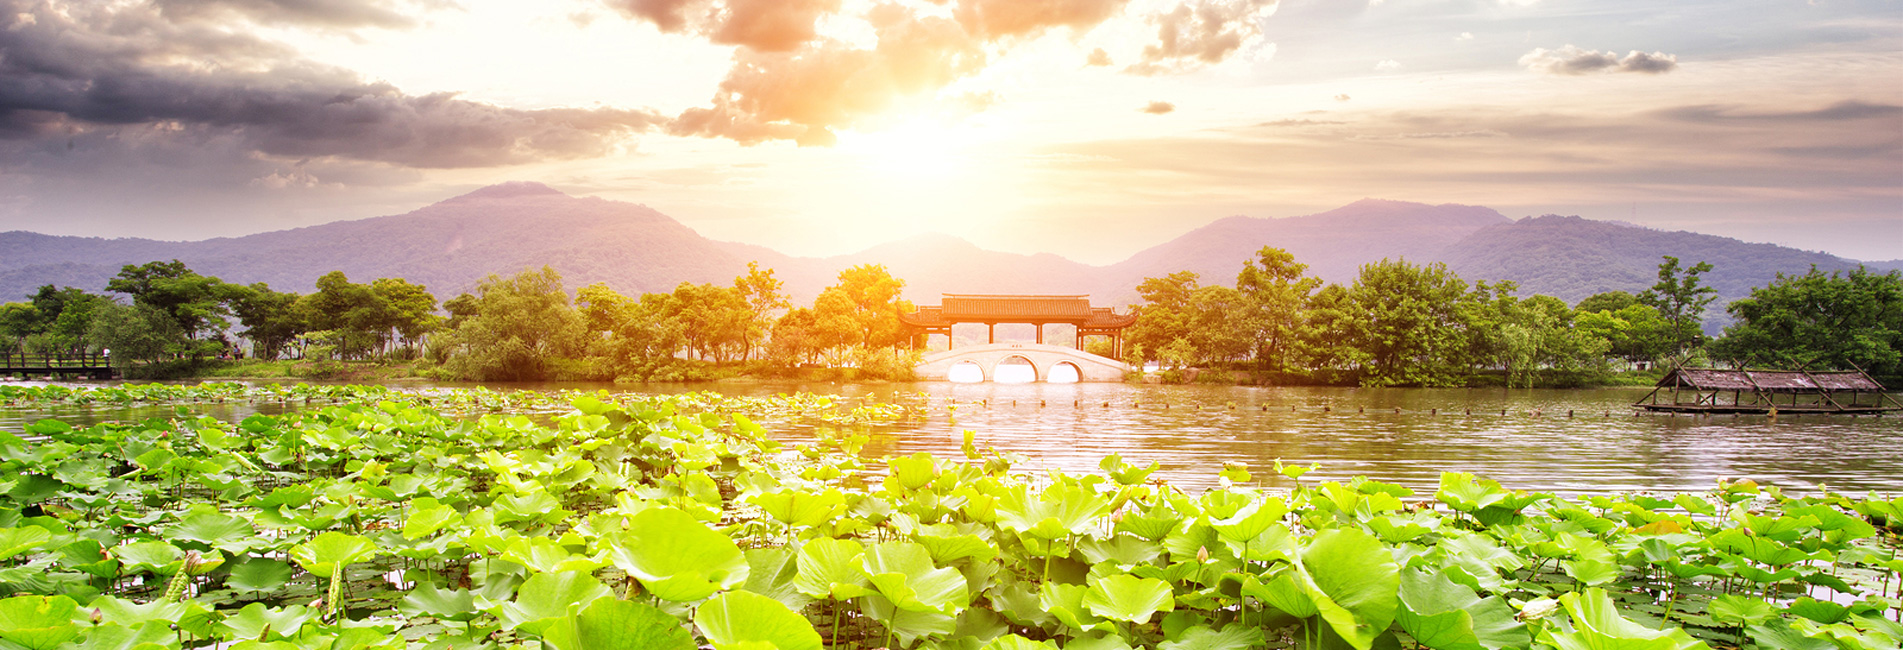 the spring colors of the West Lake in Hangzhou